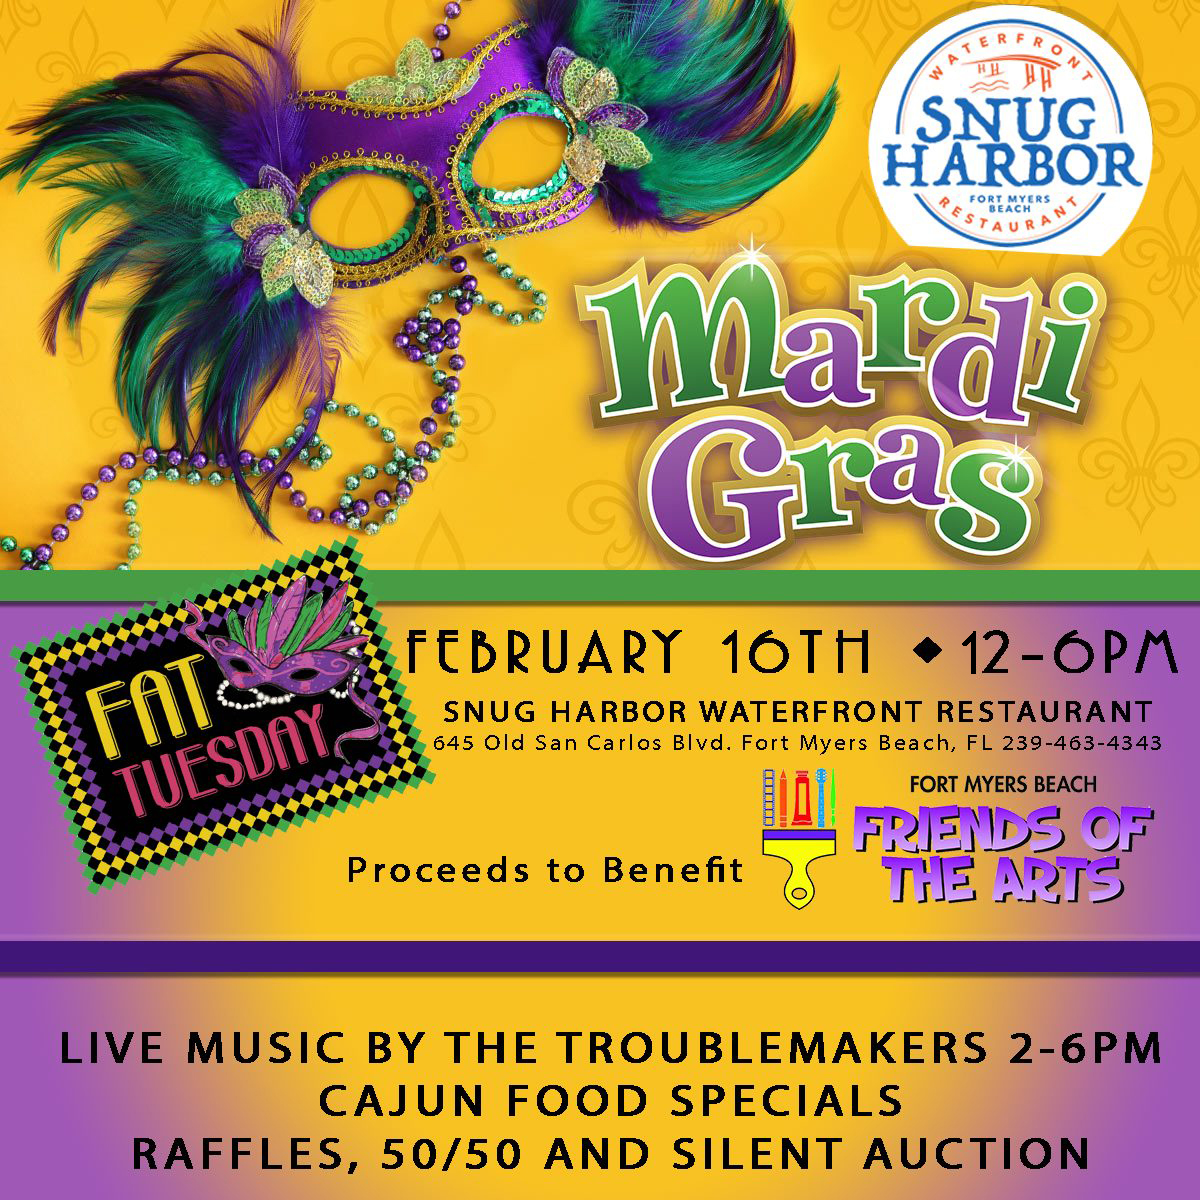 FOA Mardi Gras -snug harbor-to benefit Friends of the Arts on Fort Myers Beach